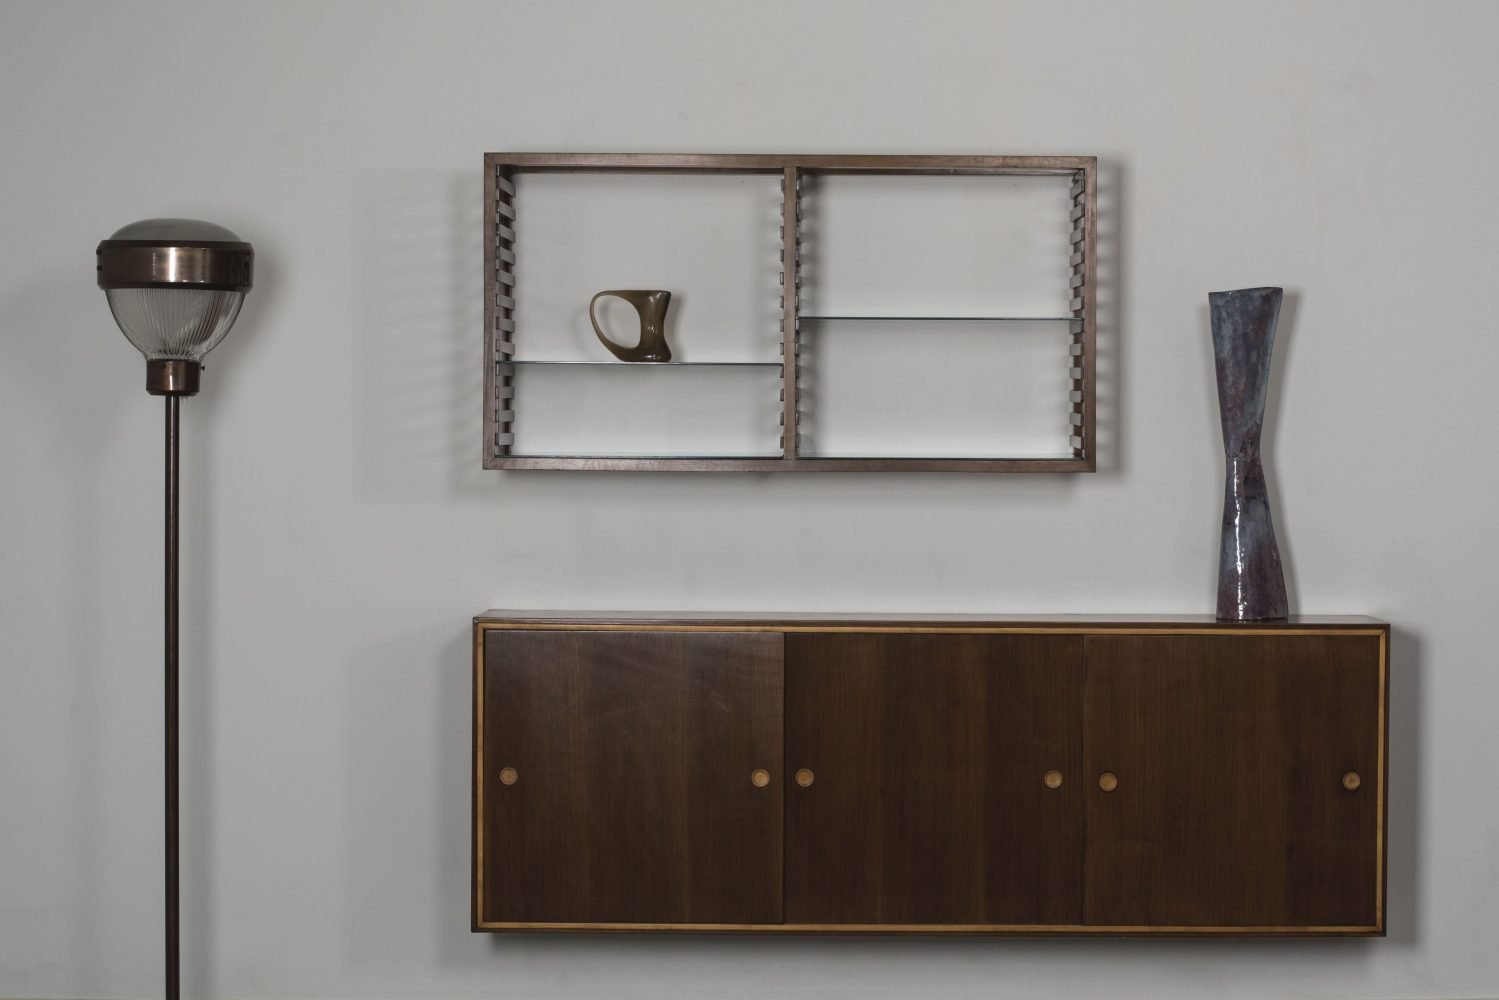 Franco Albini bookcase and cabinet with BBPR lam and Melotti vase